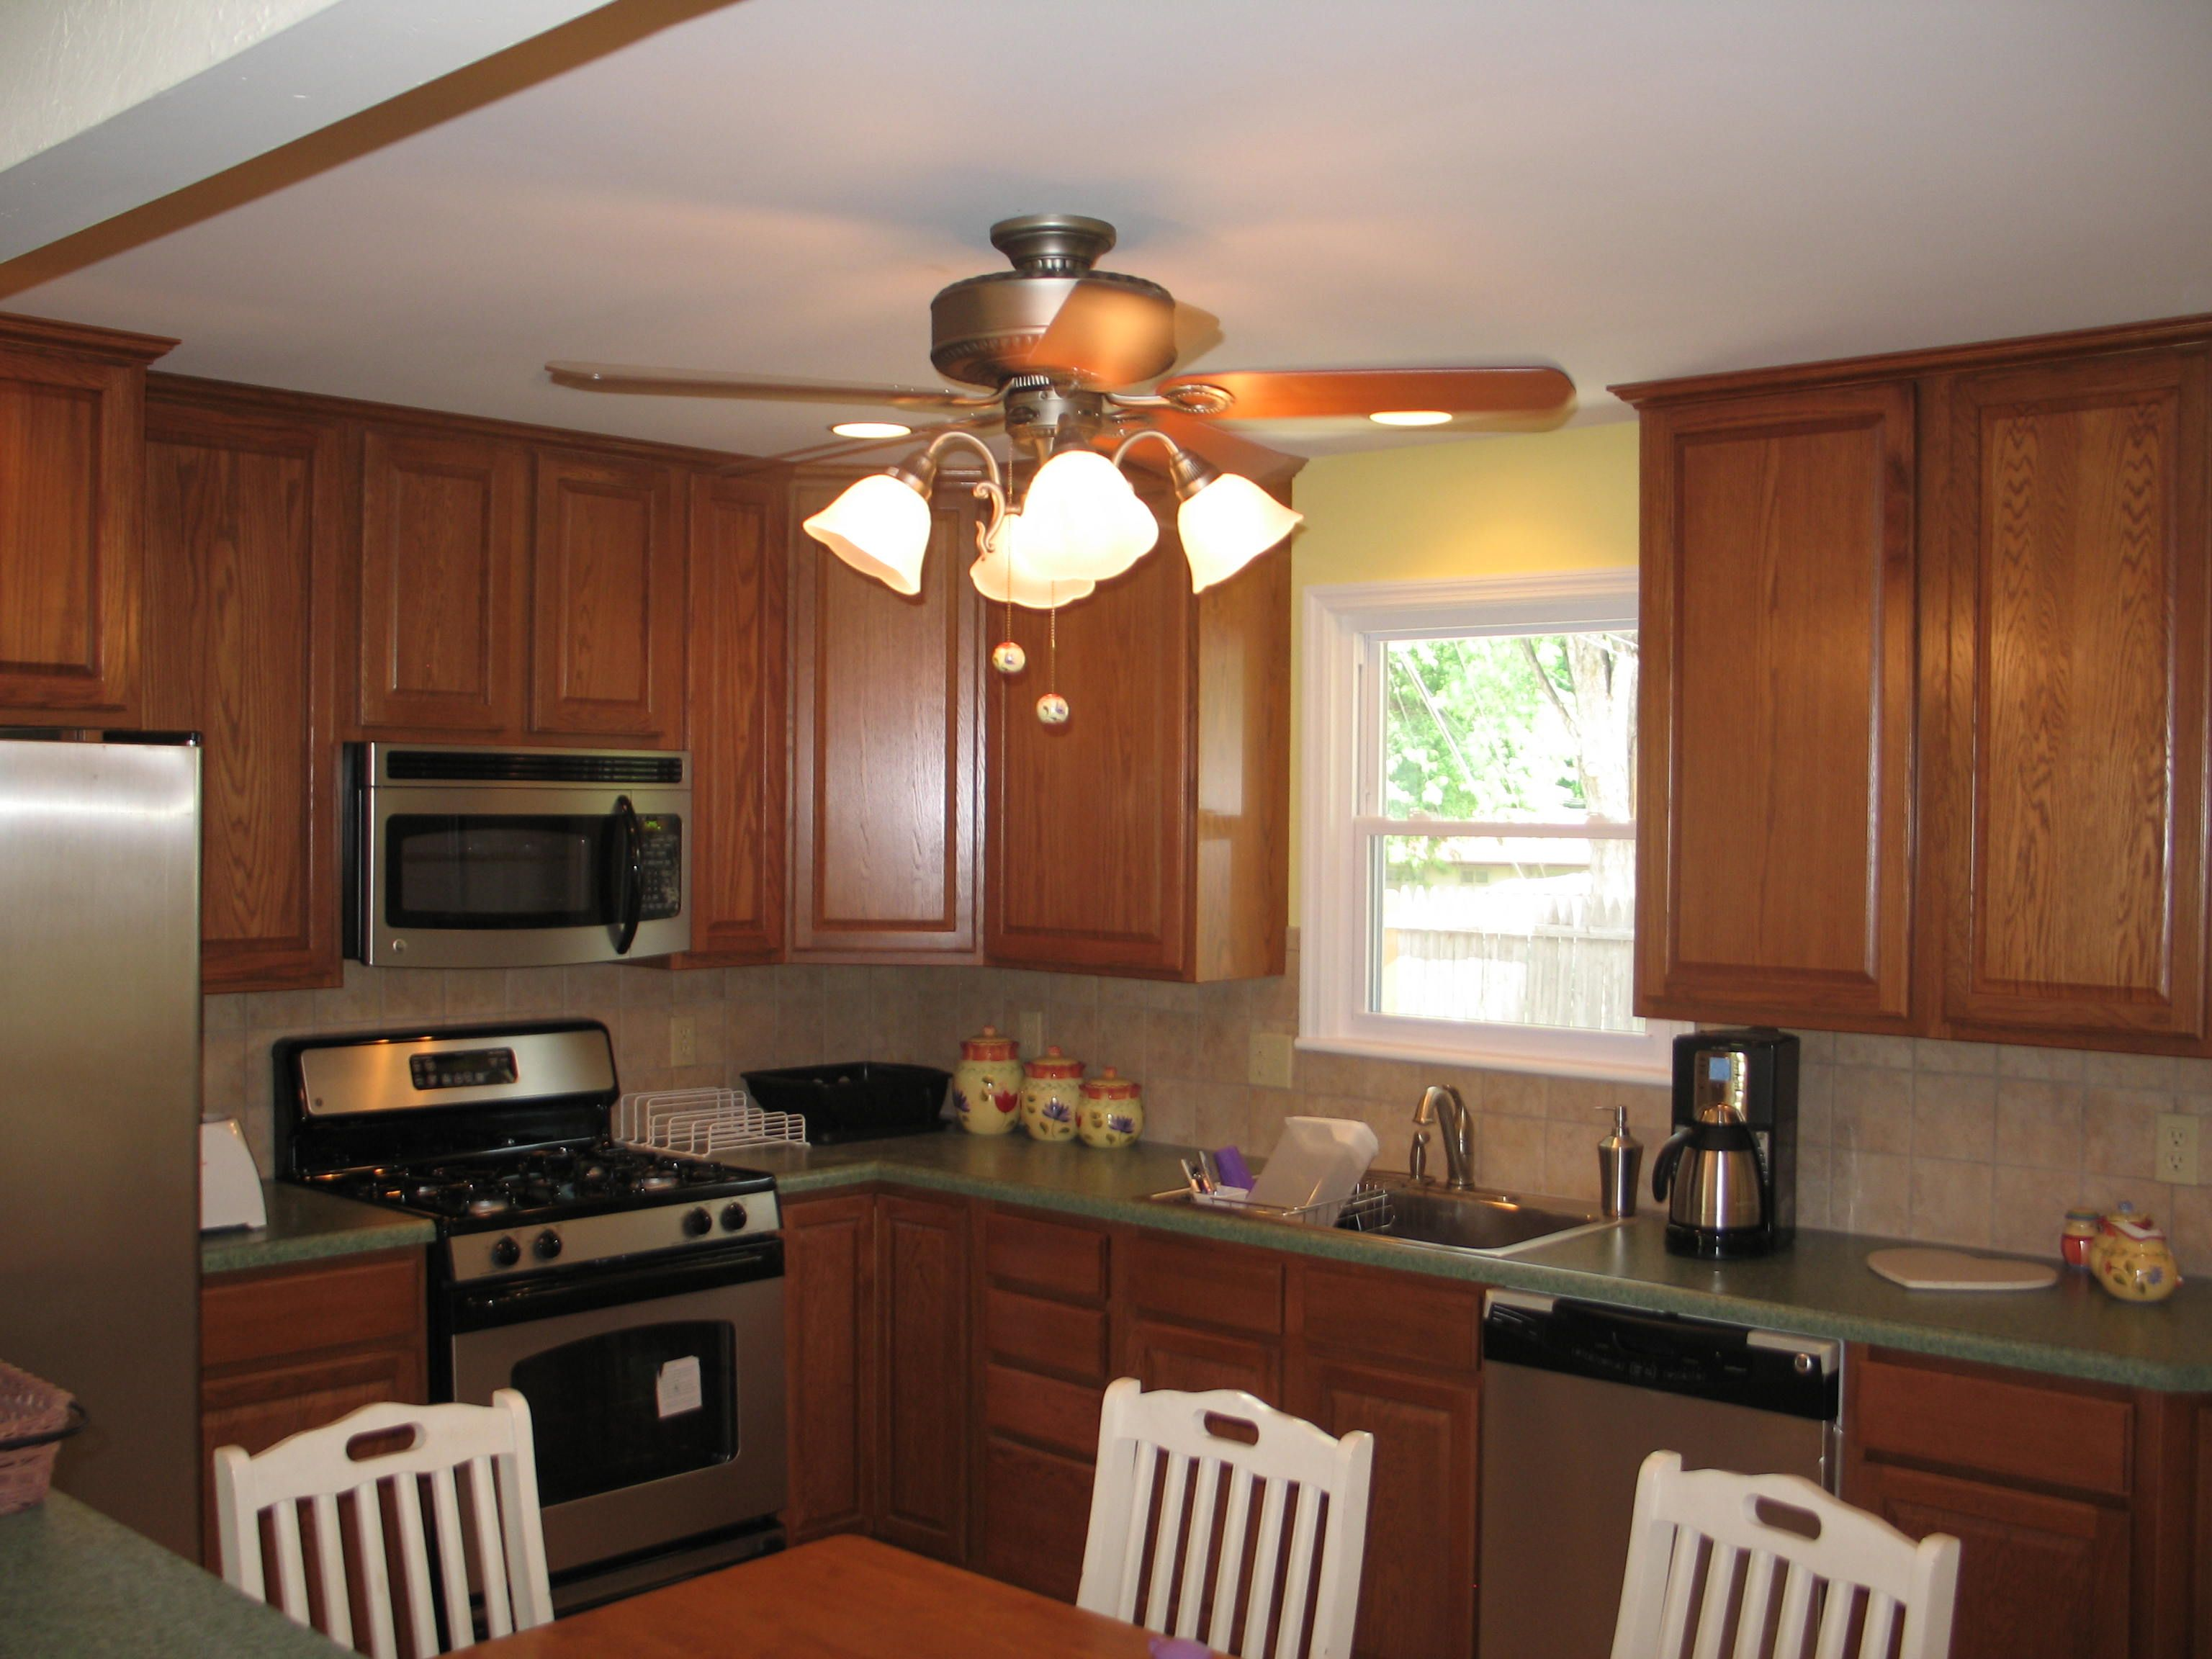 #Kitchen #Remodeling - How to Start?  http://aaaremodeling.com/kitchen-remodeling-how-to-start